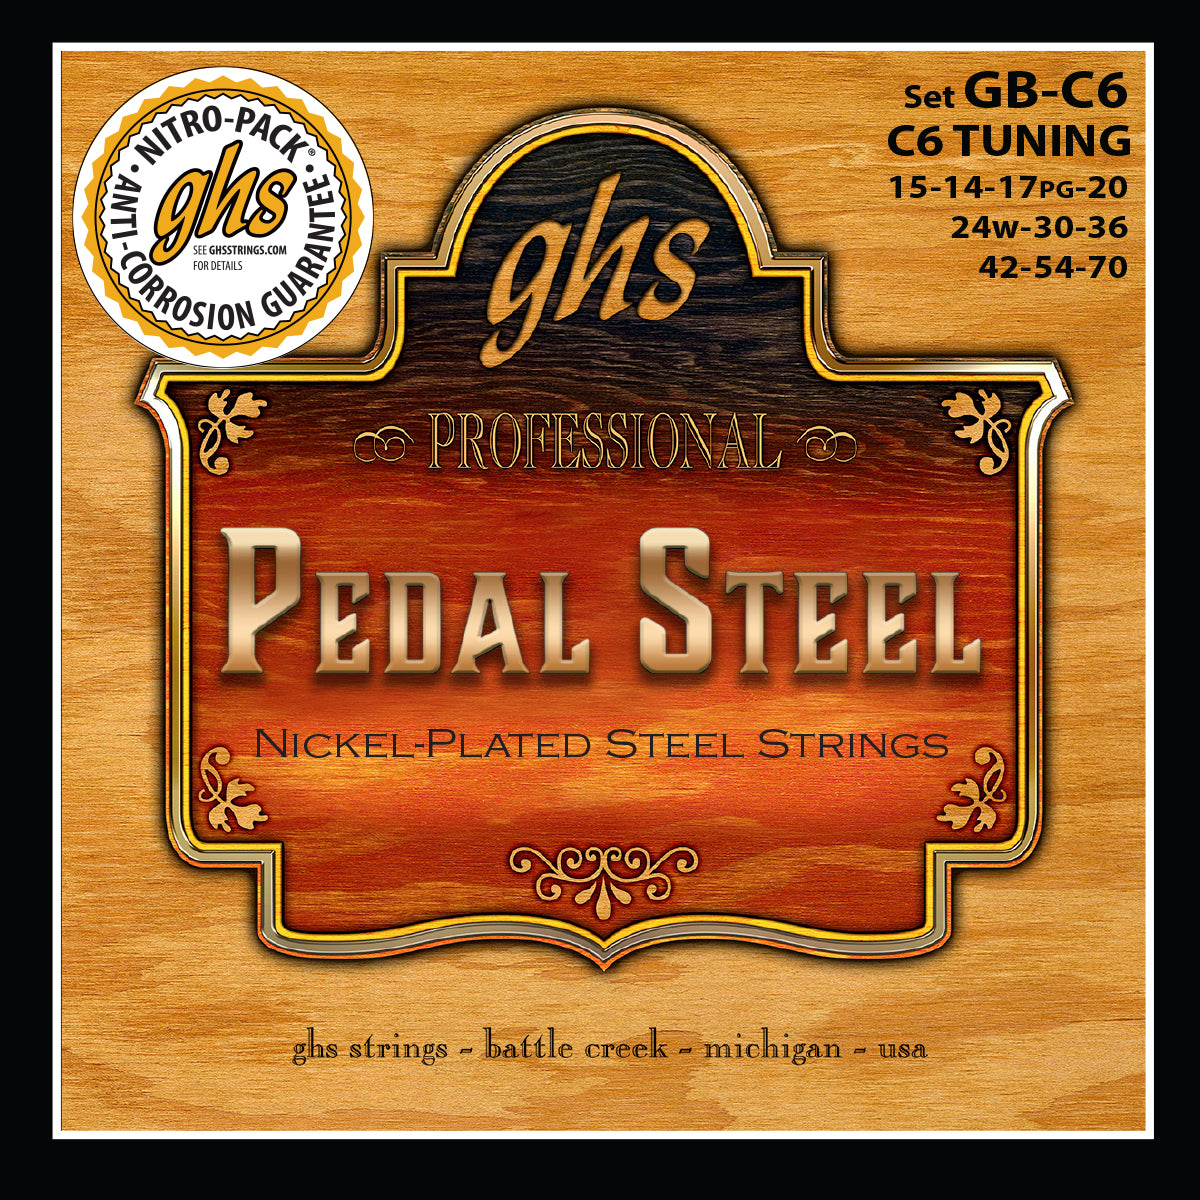 GHS C6th Tuning Pedal Steel Strings